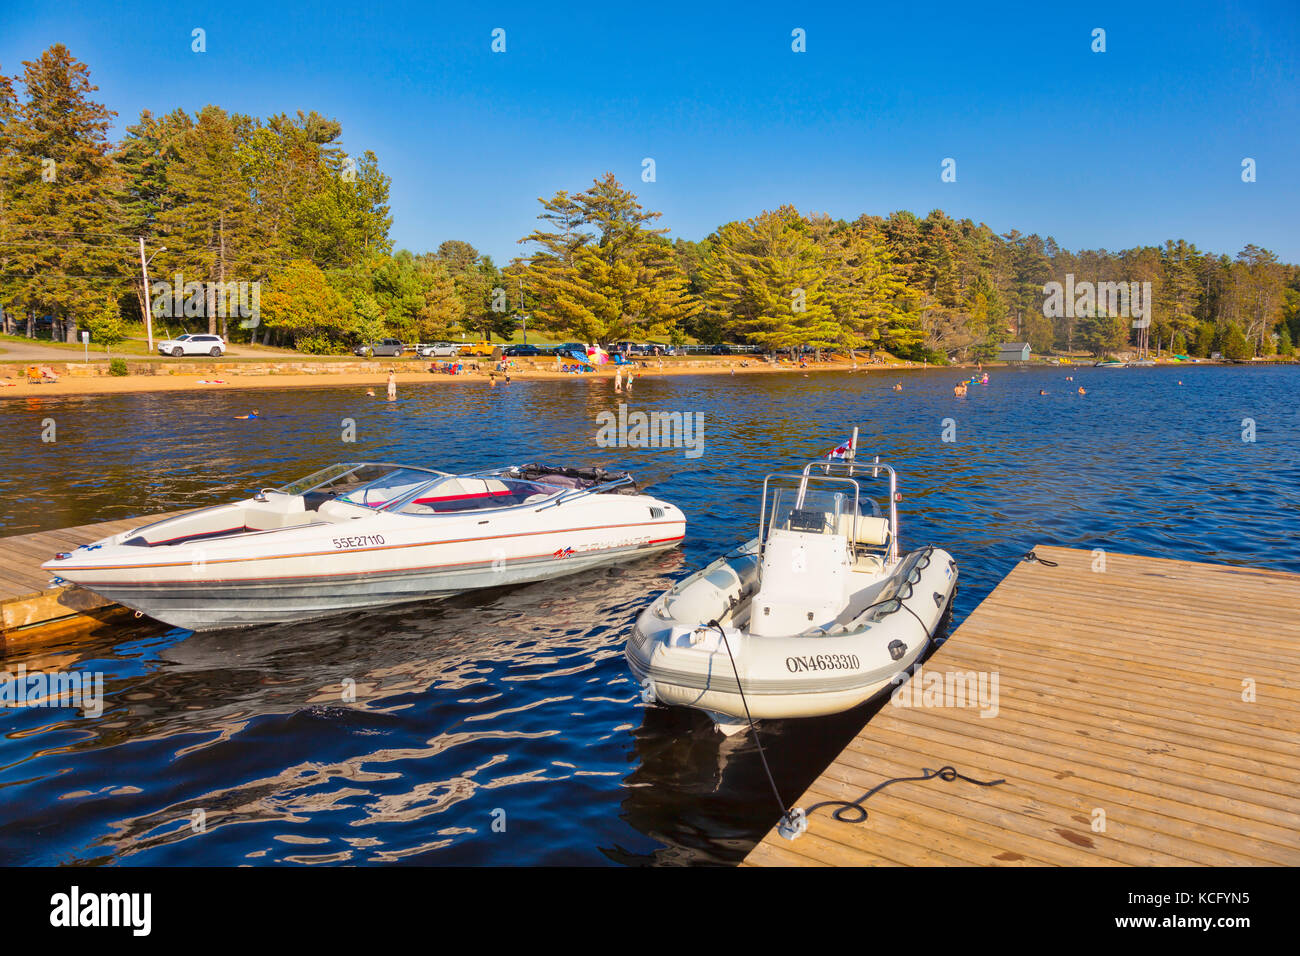 Boats docked in Canada,Ontario,Huntsville,Dwight, Dwight Beach sommer playground in Ontario's North in Cottage - Stock Image